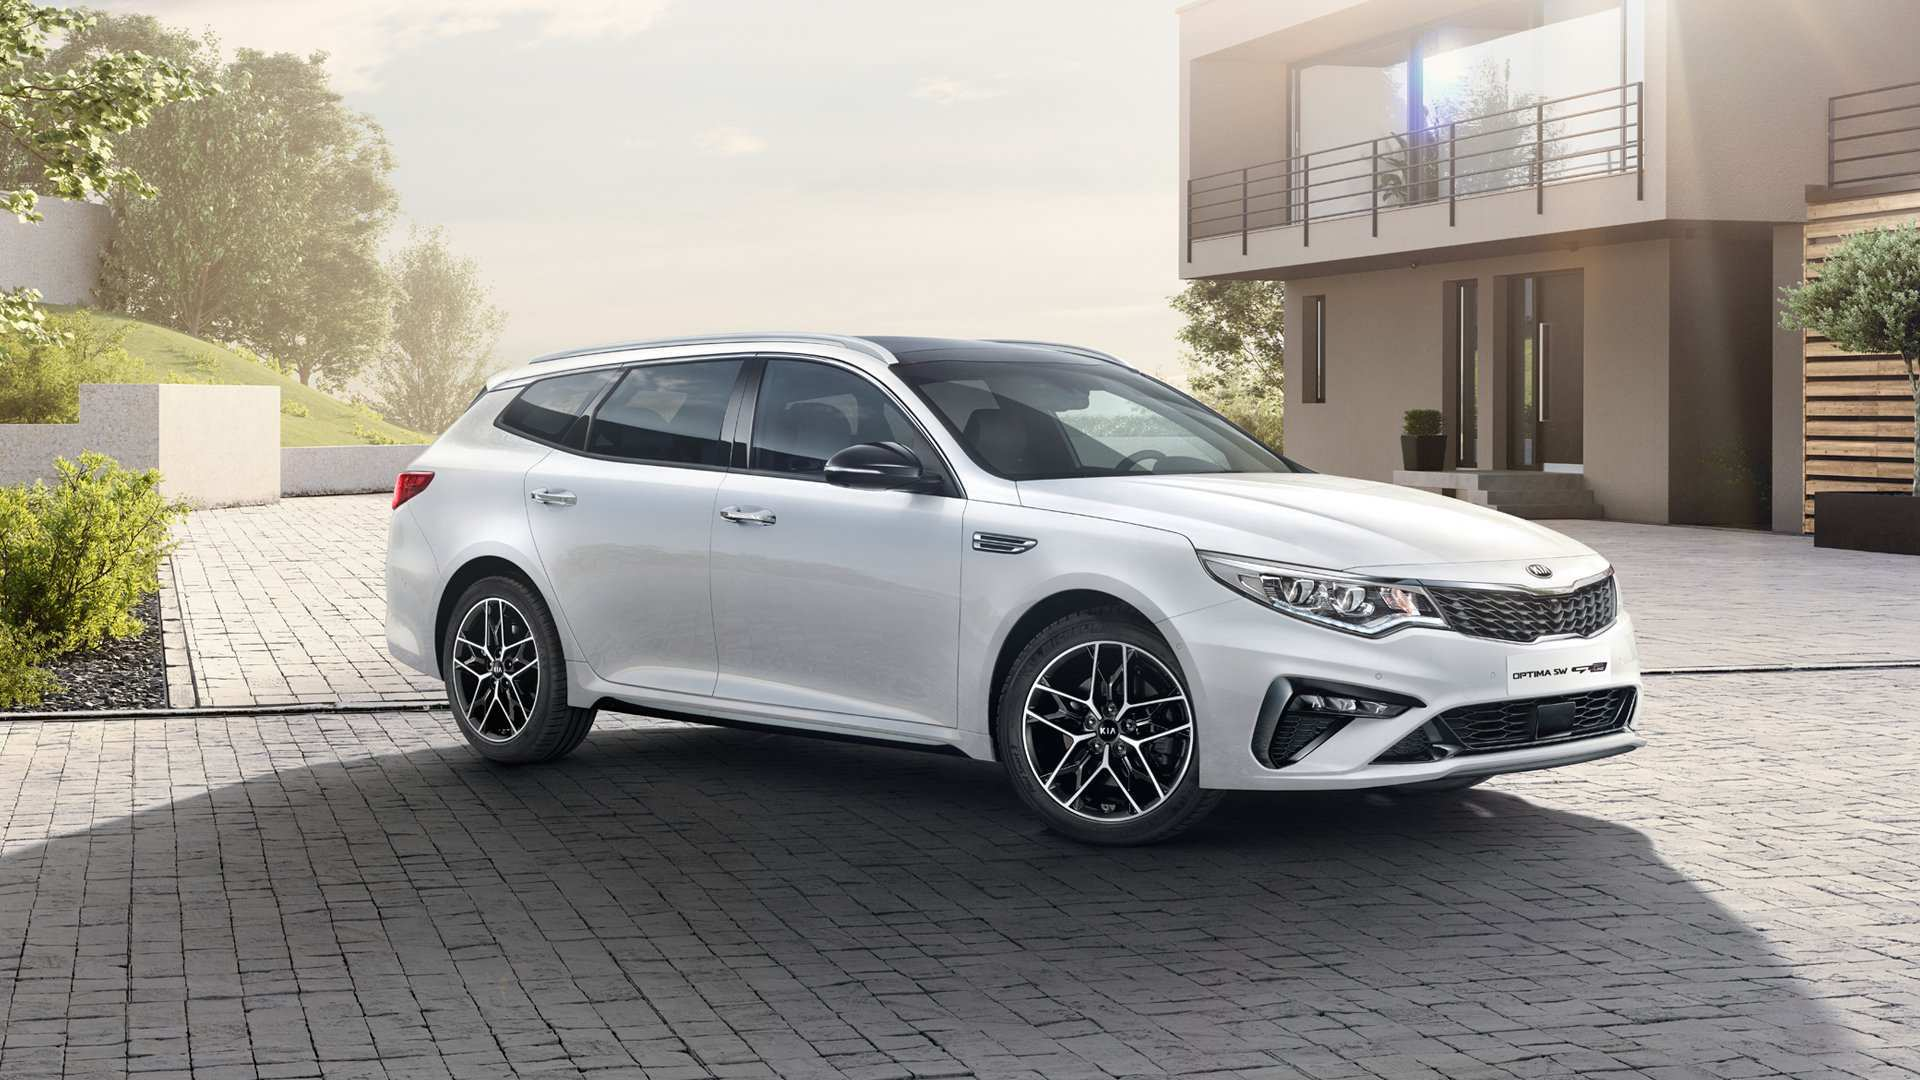 16 Gallery of Best Kia 2019 Hybrid Review First Drive for Best Kia 2019 Hybrid Review